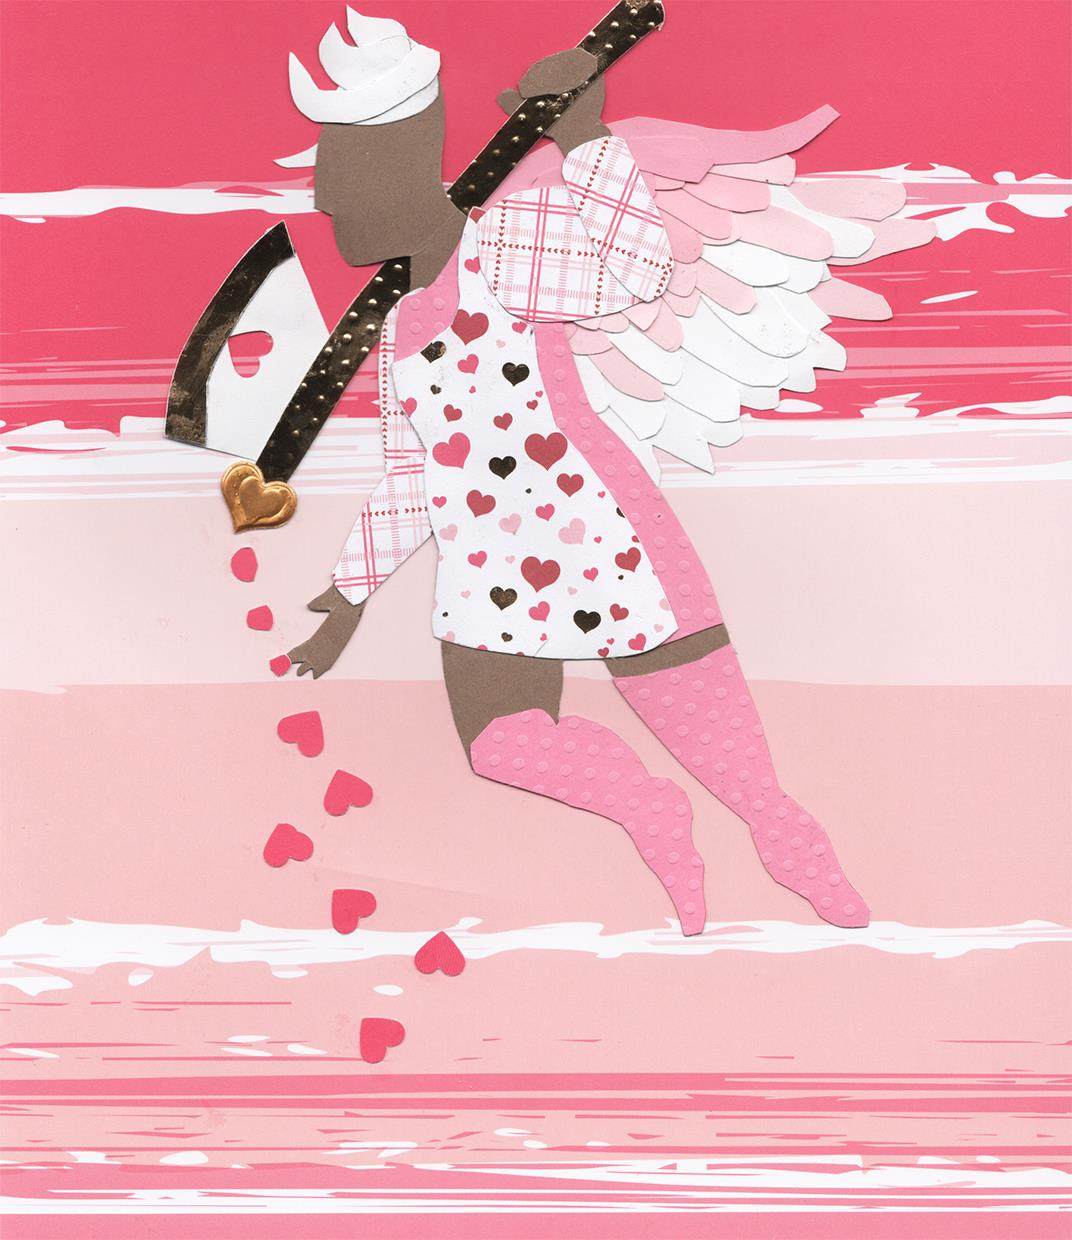 The Cupid was first sketched out in a sketchpad, then traced using tracing paper. Various card stock papers were gathered, and b